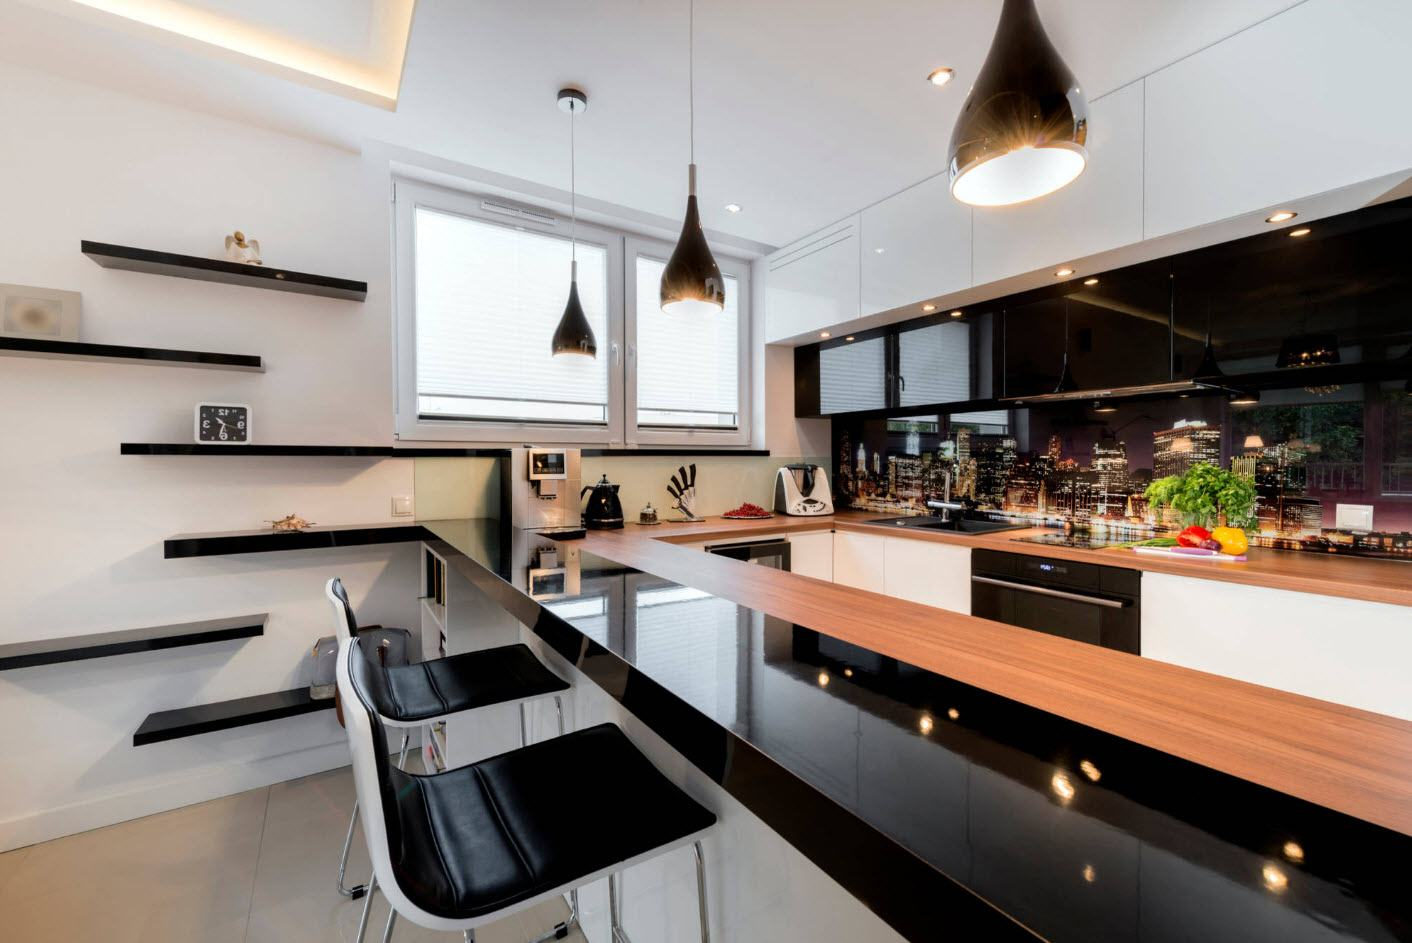 Spectacular black glossy countertop for high-tech kitchen